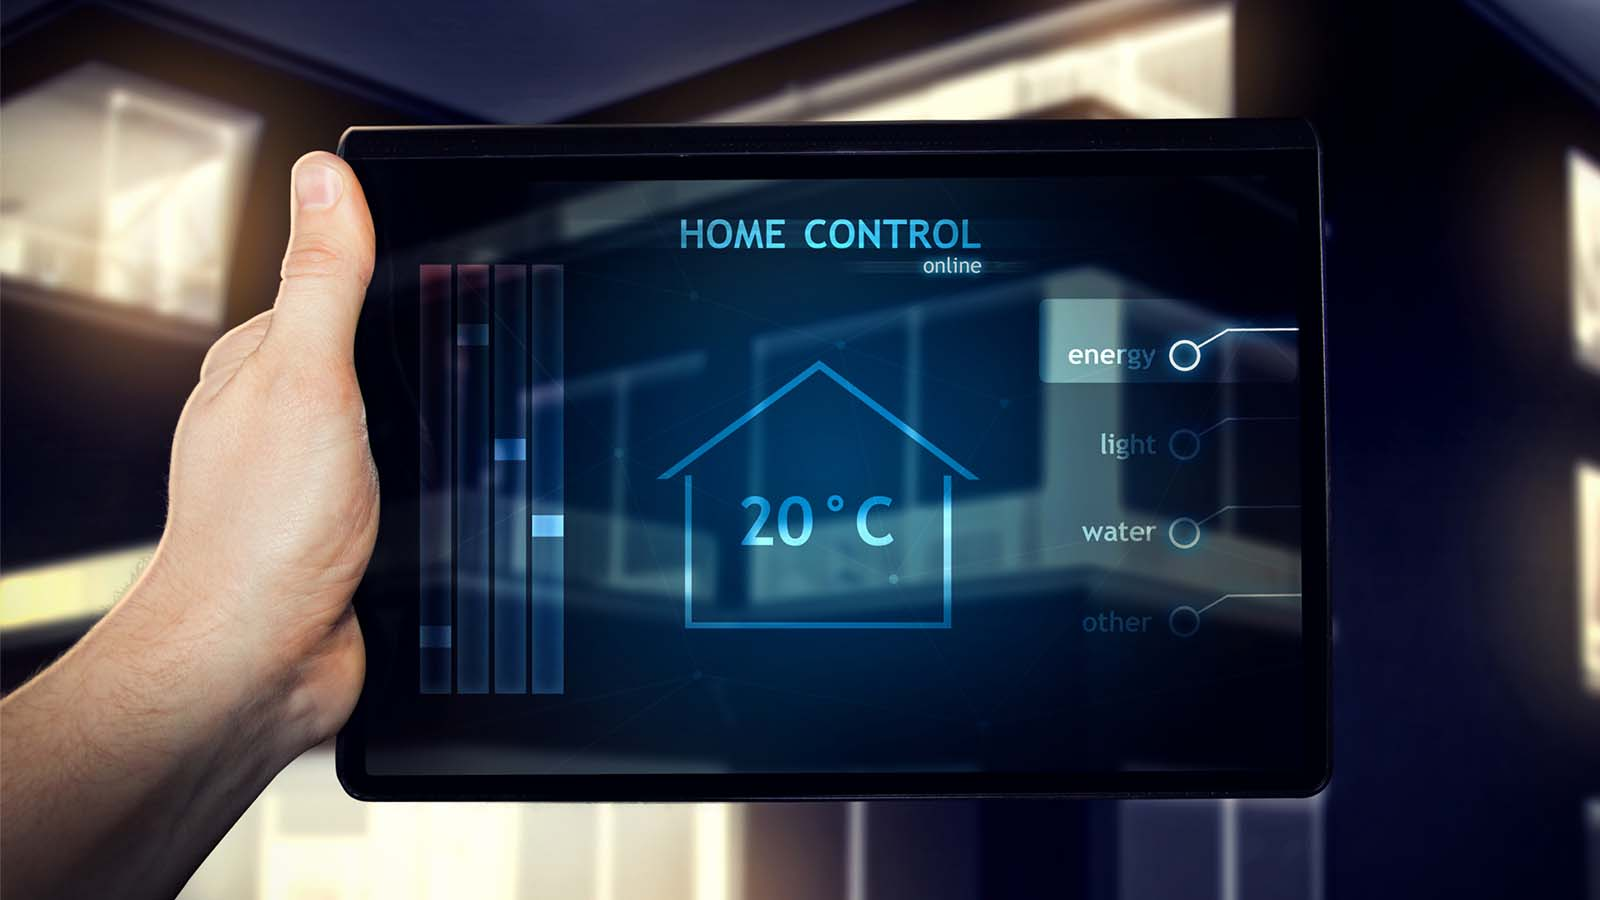 Watchdog_Security_Home_Automation_Slide_2